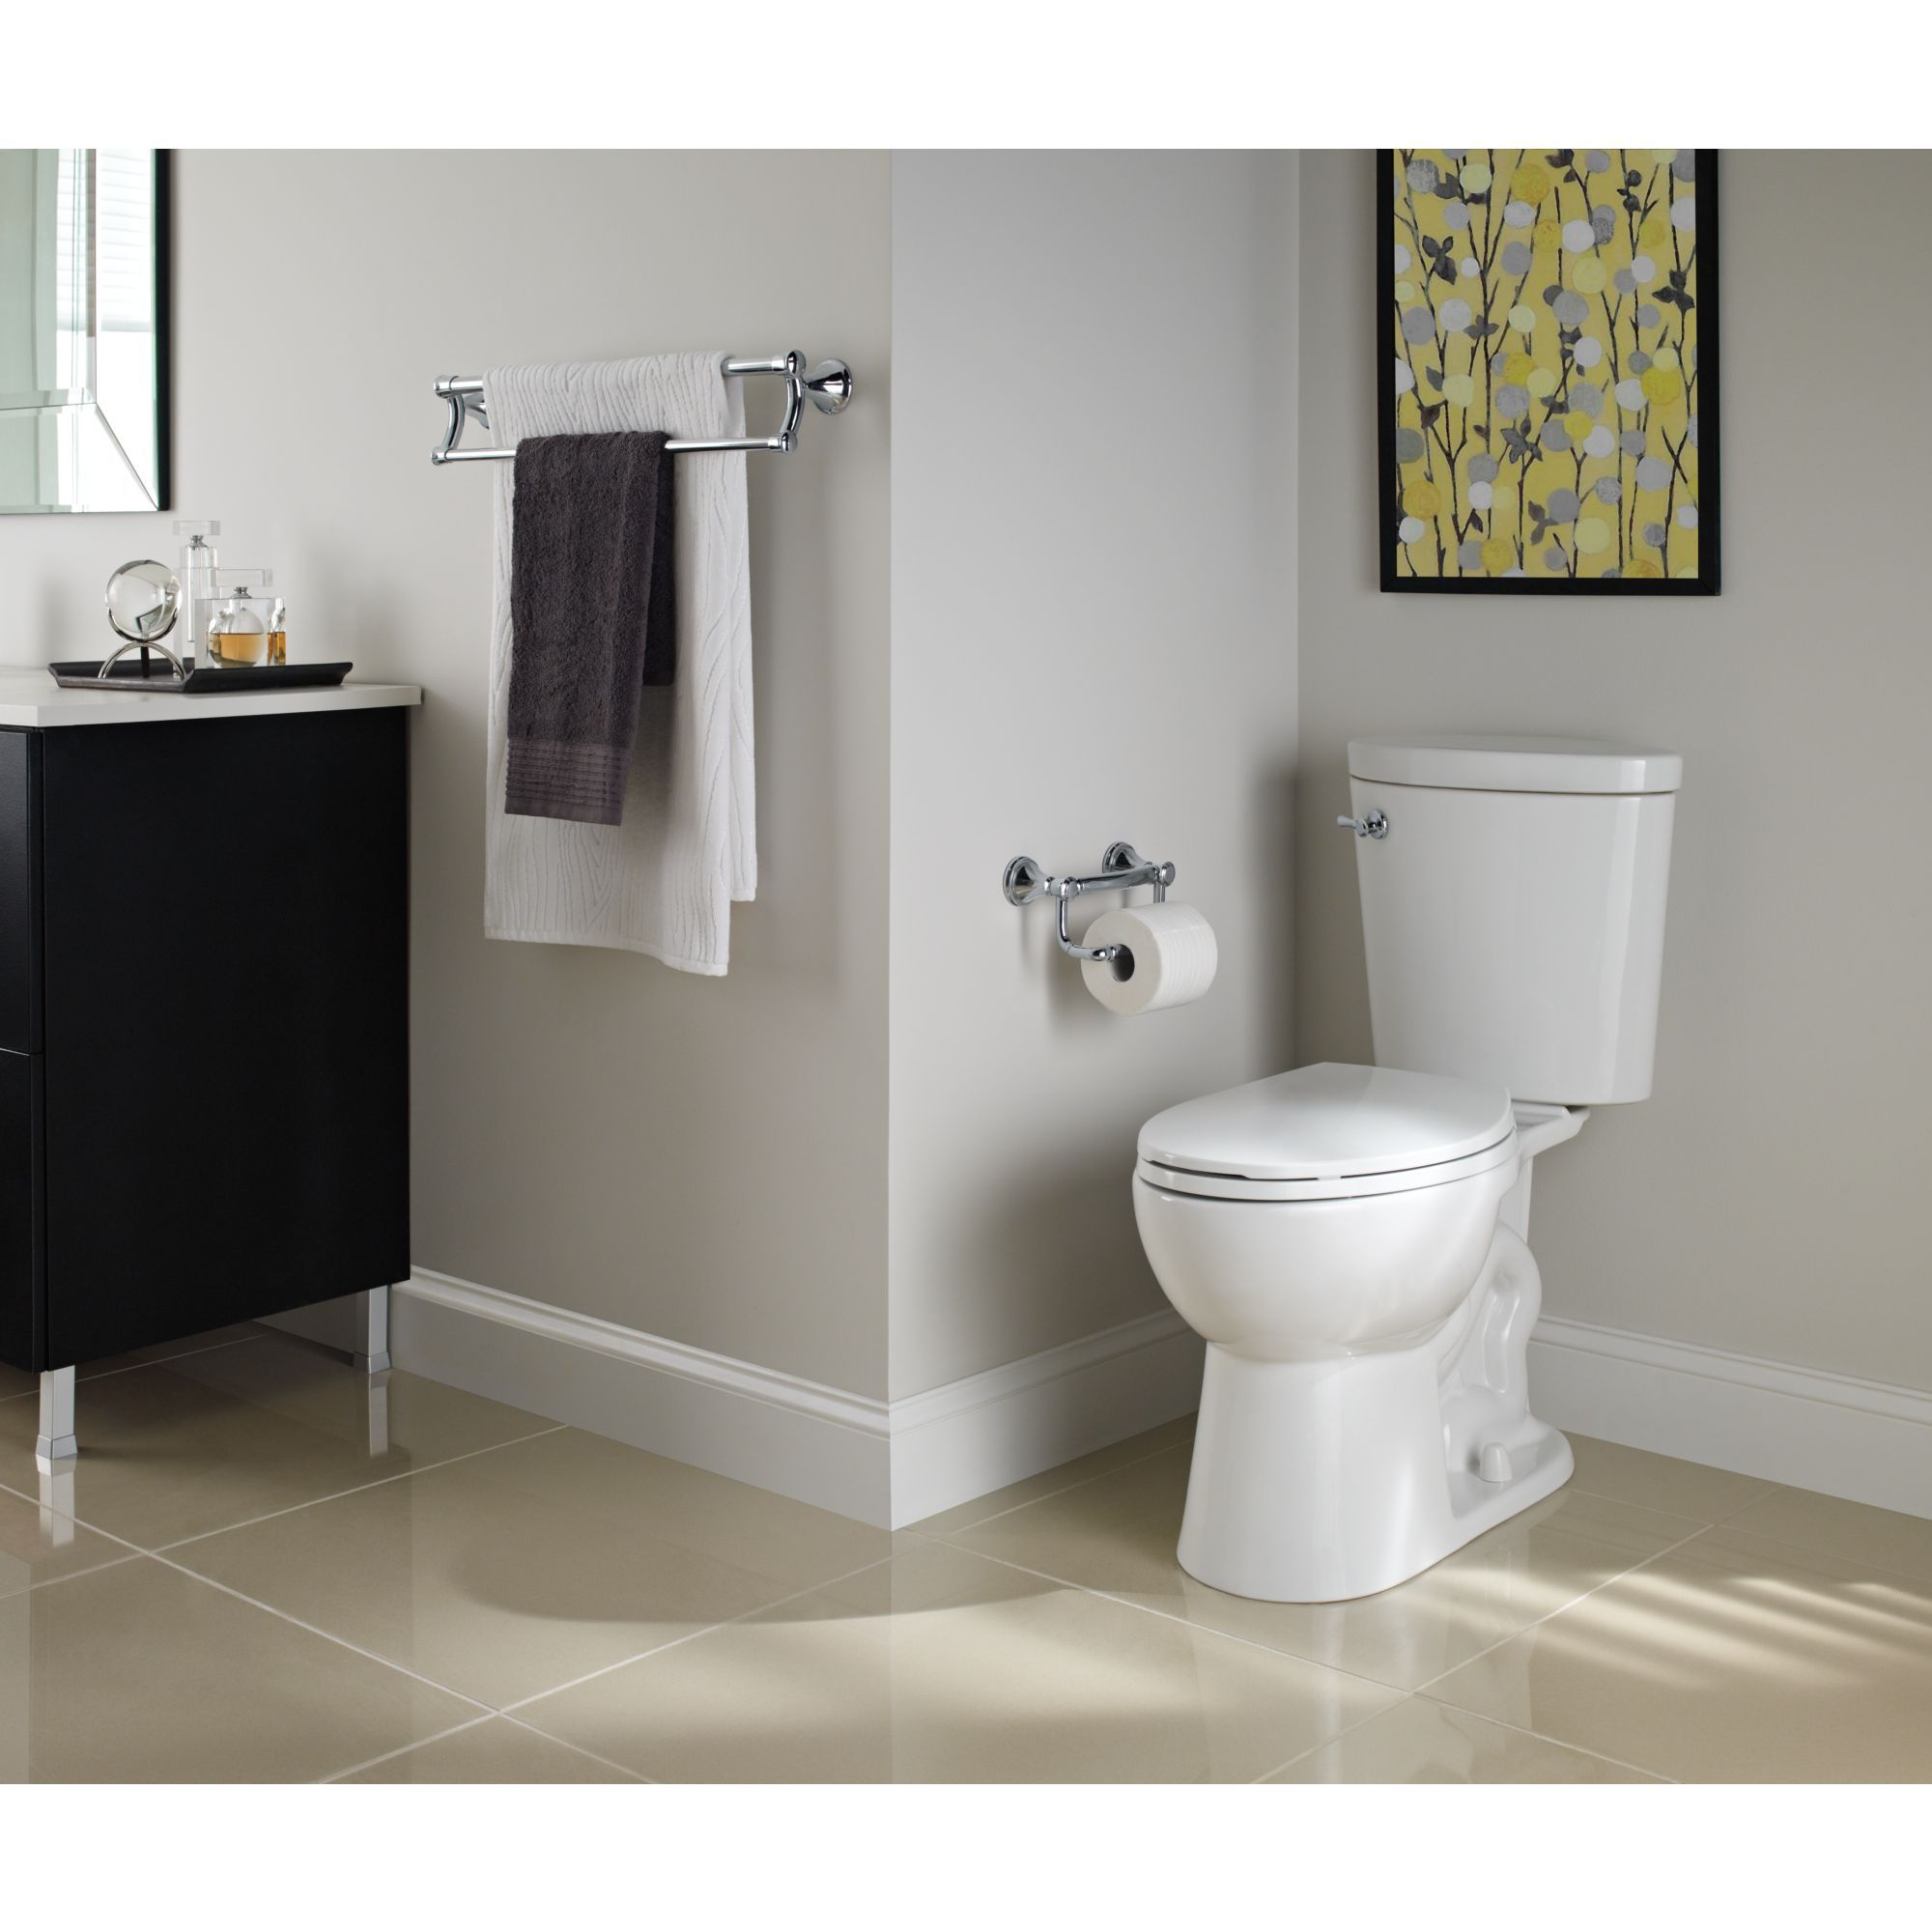 Universal Design Products, Like Towel Bars Or Corner Shelves That Also  Double As Assist Bars